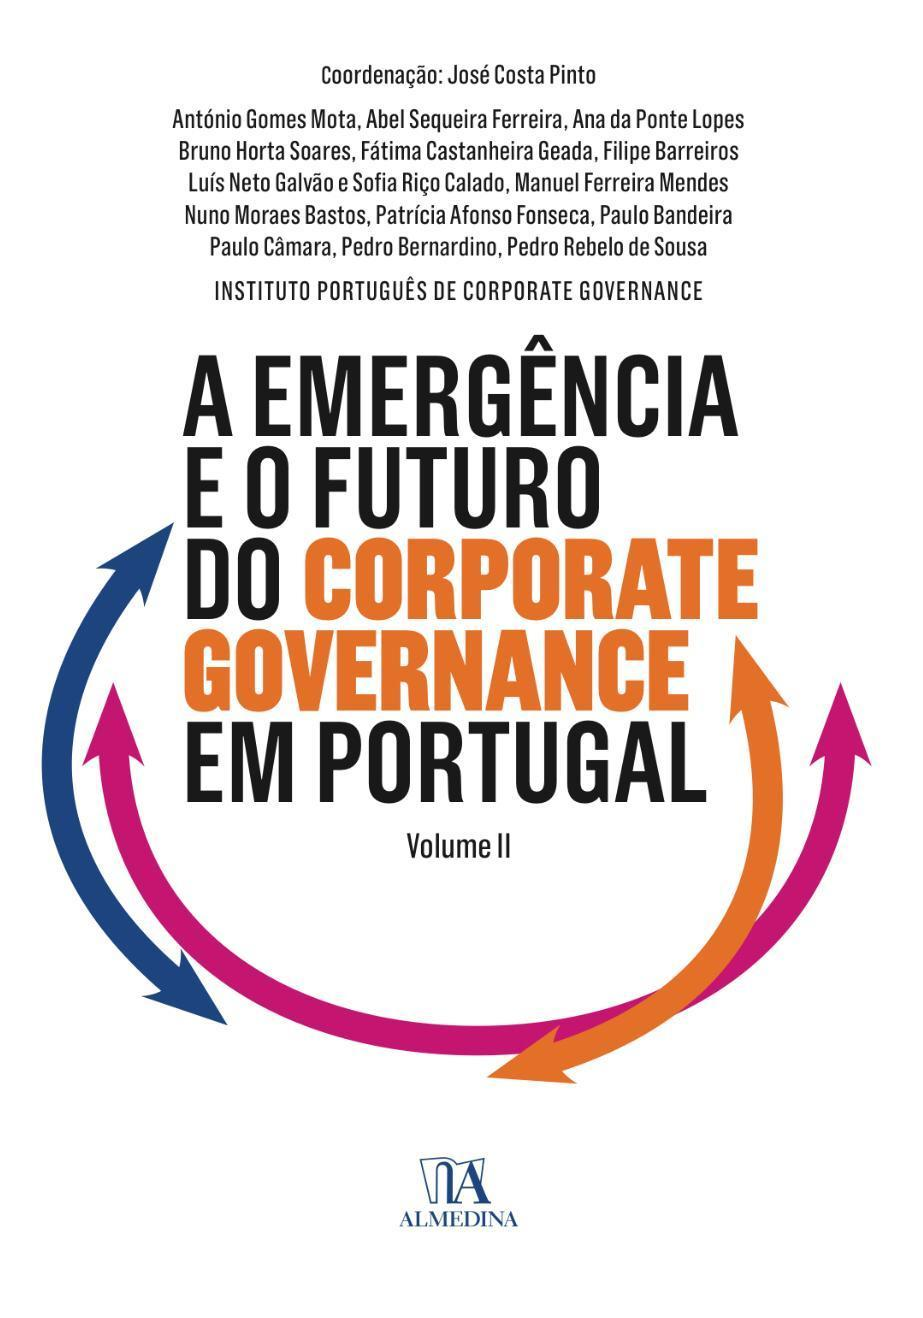 A Emergência e o Futuro do Corporate Governance em Portugal